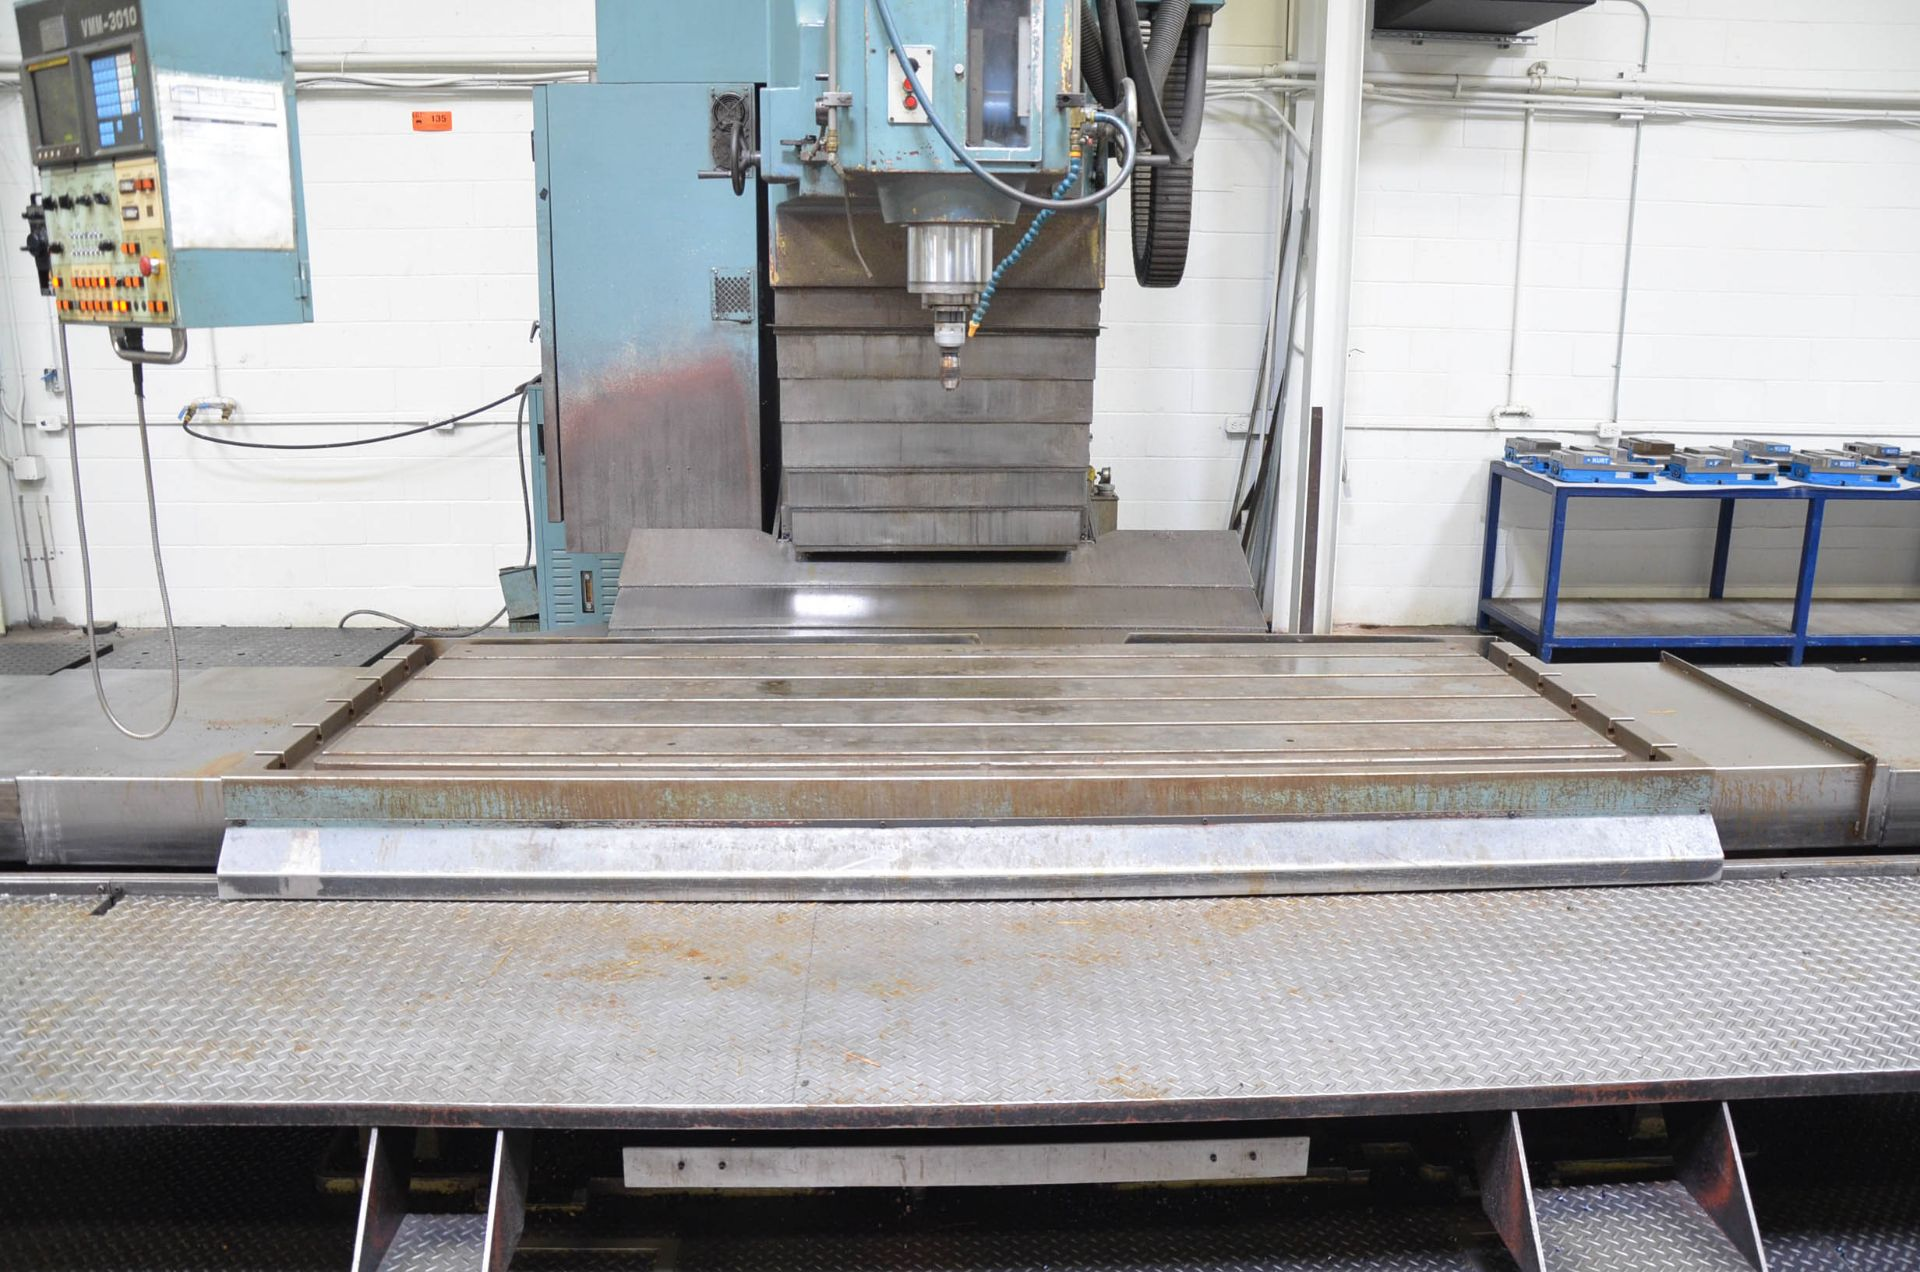 """KAFO VMM3010 CNC VERTICAL MILLING MACHINE WITH FANUC SERIES 15-M CNC CONTROL, 43""""X112"""" TABLE, - Image 3 of 6"""